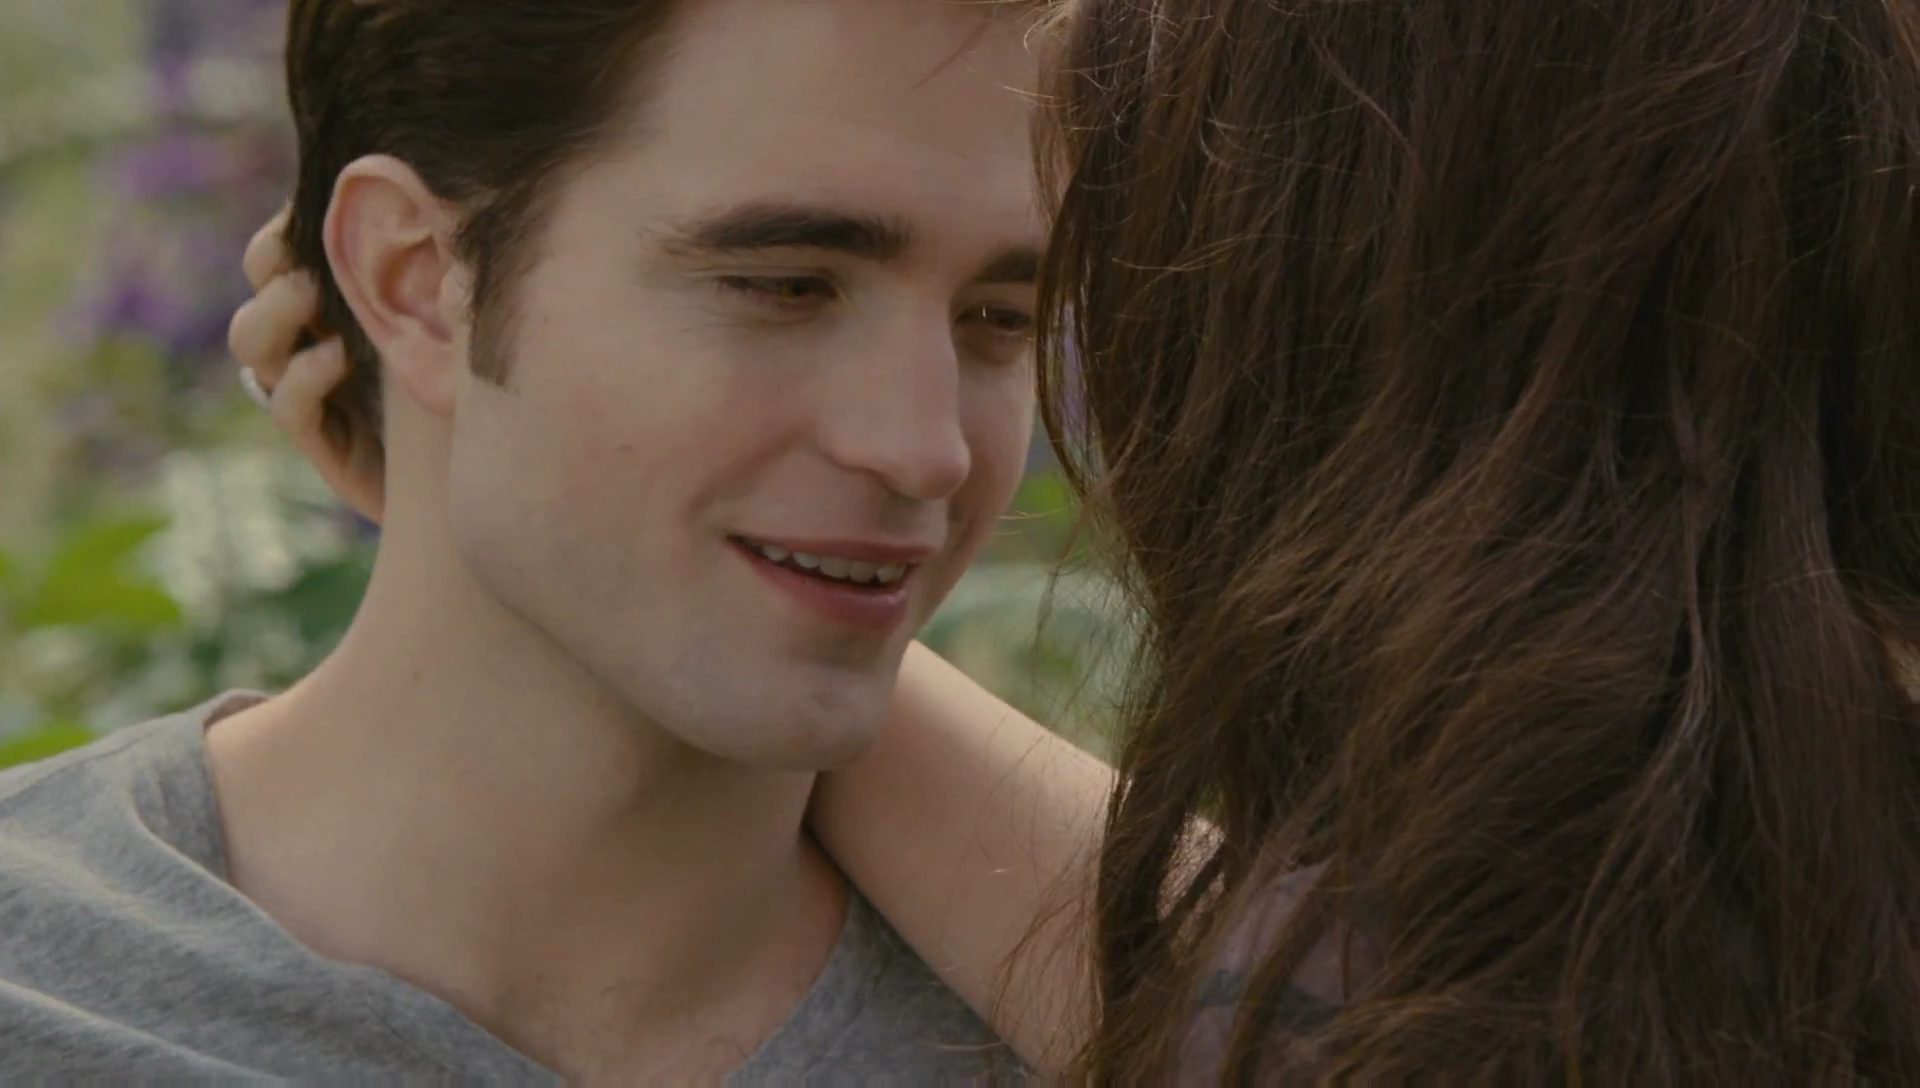 twilight breaking dawn part 2 � tvspot 3 2012 kristen